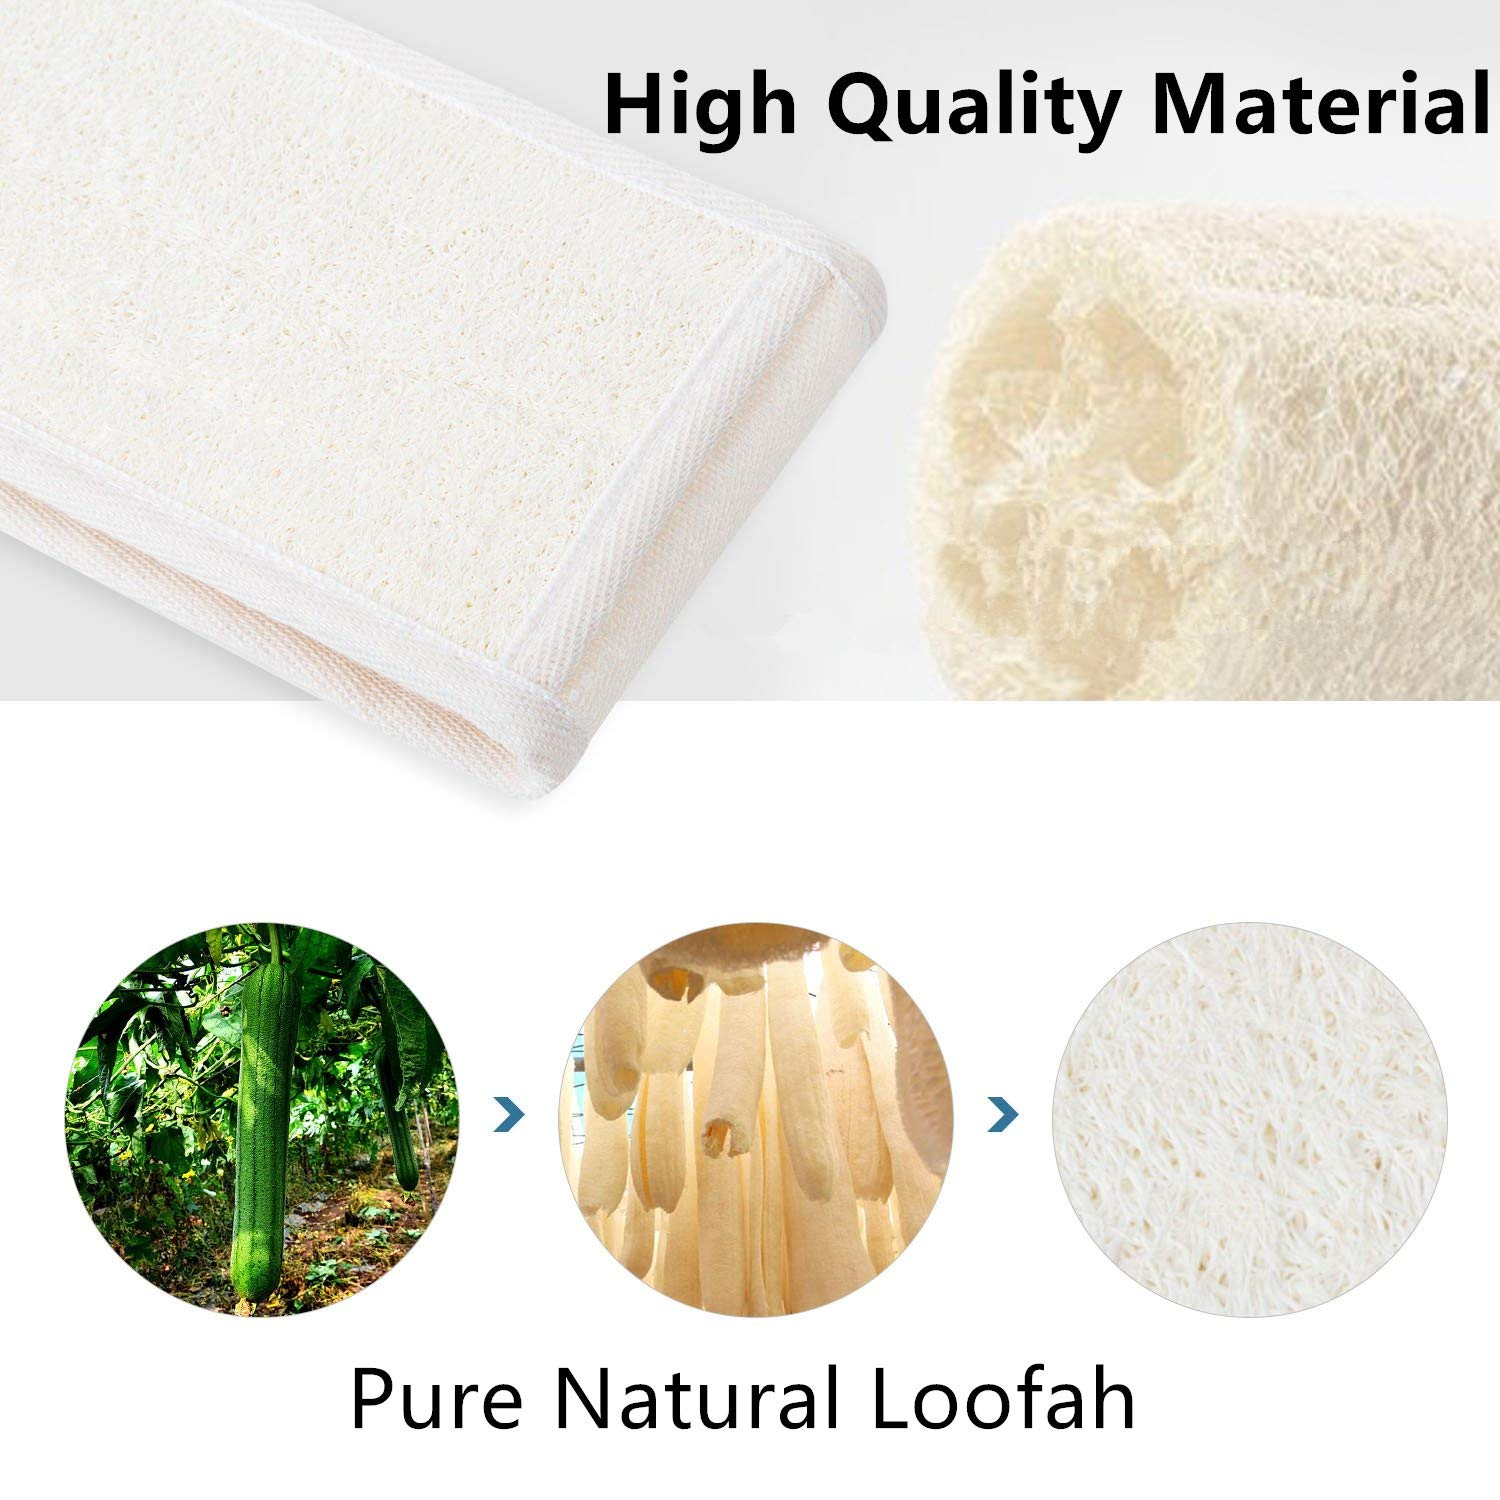 Pure Natural Loofah Back Scrubber for Shower, Deep Clean & Exfoliating, Invigorate Your Skin, Good for Health and Beauty